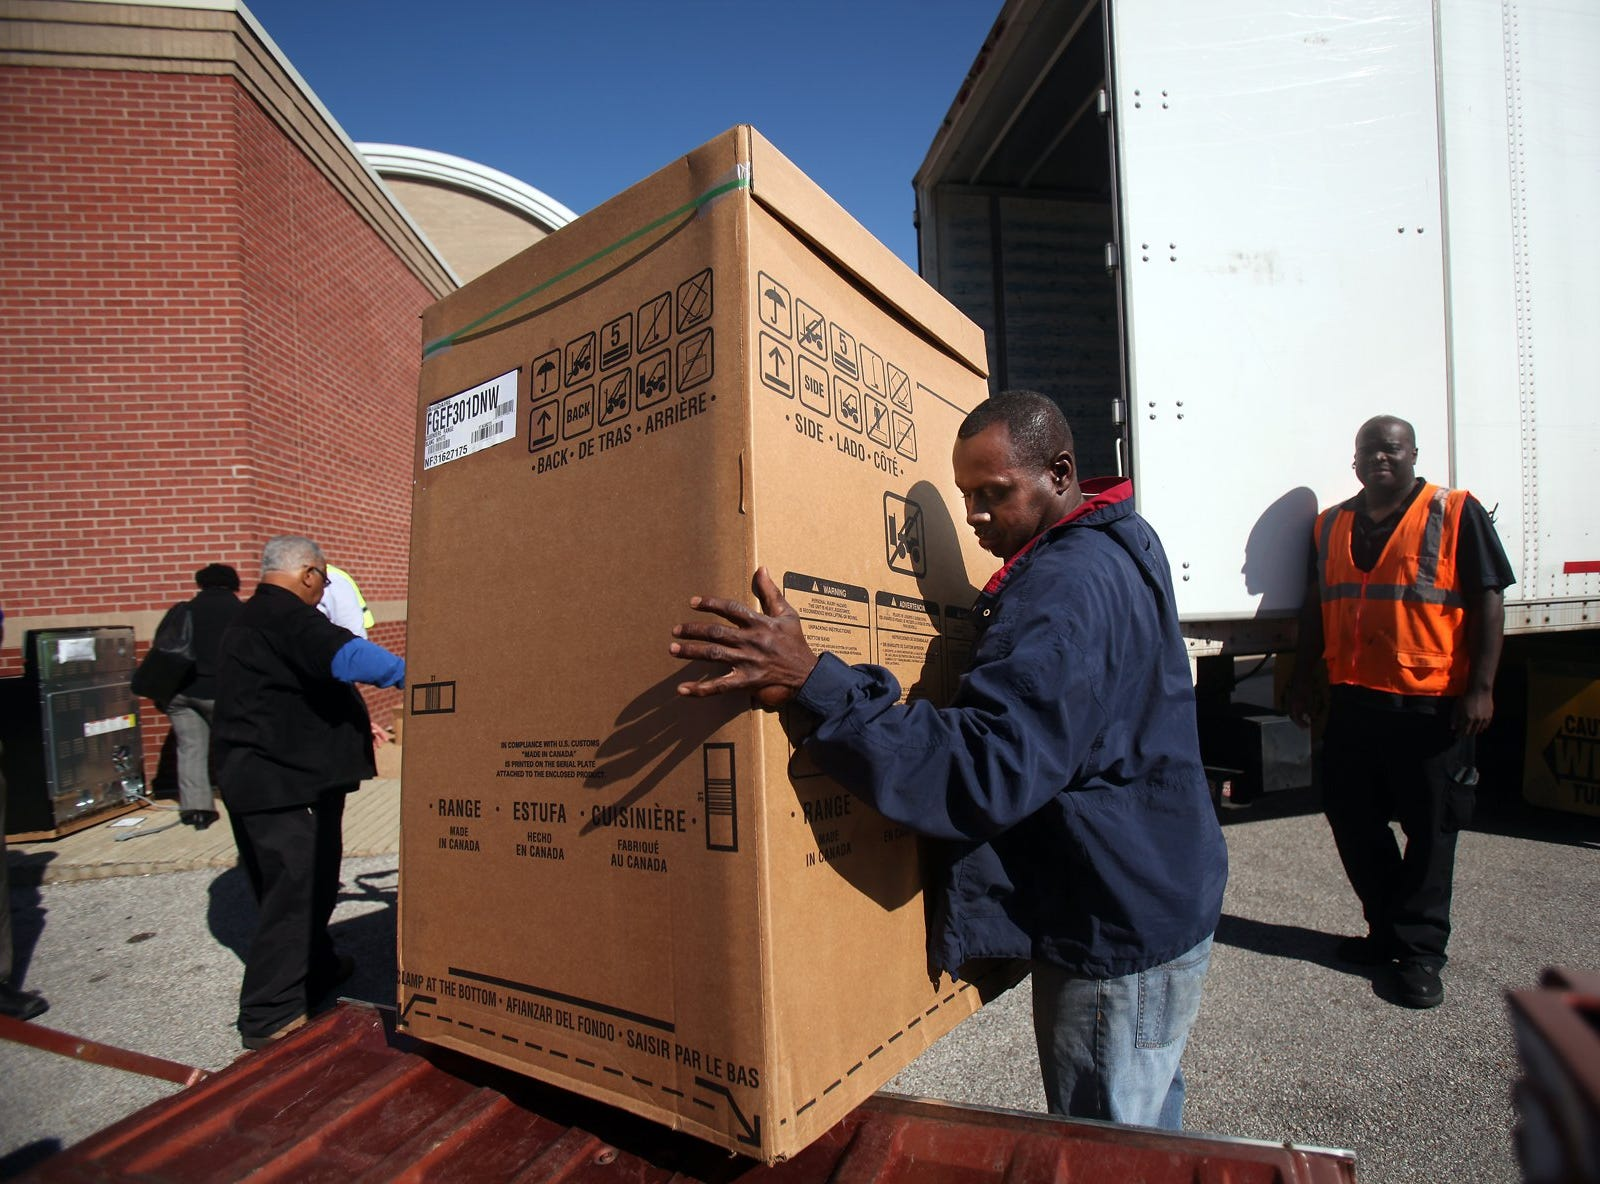 October 24, 2013 - (center) Michael Stamps loads a free Electrolux oven into his truck as the company gives away $100,000 worth of ovens and microwaves to community residents. (Kyle Kurlick/Special to The Commercial Appeal)